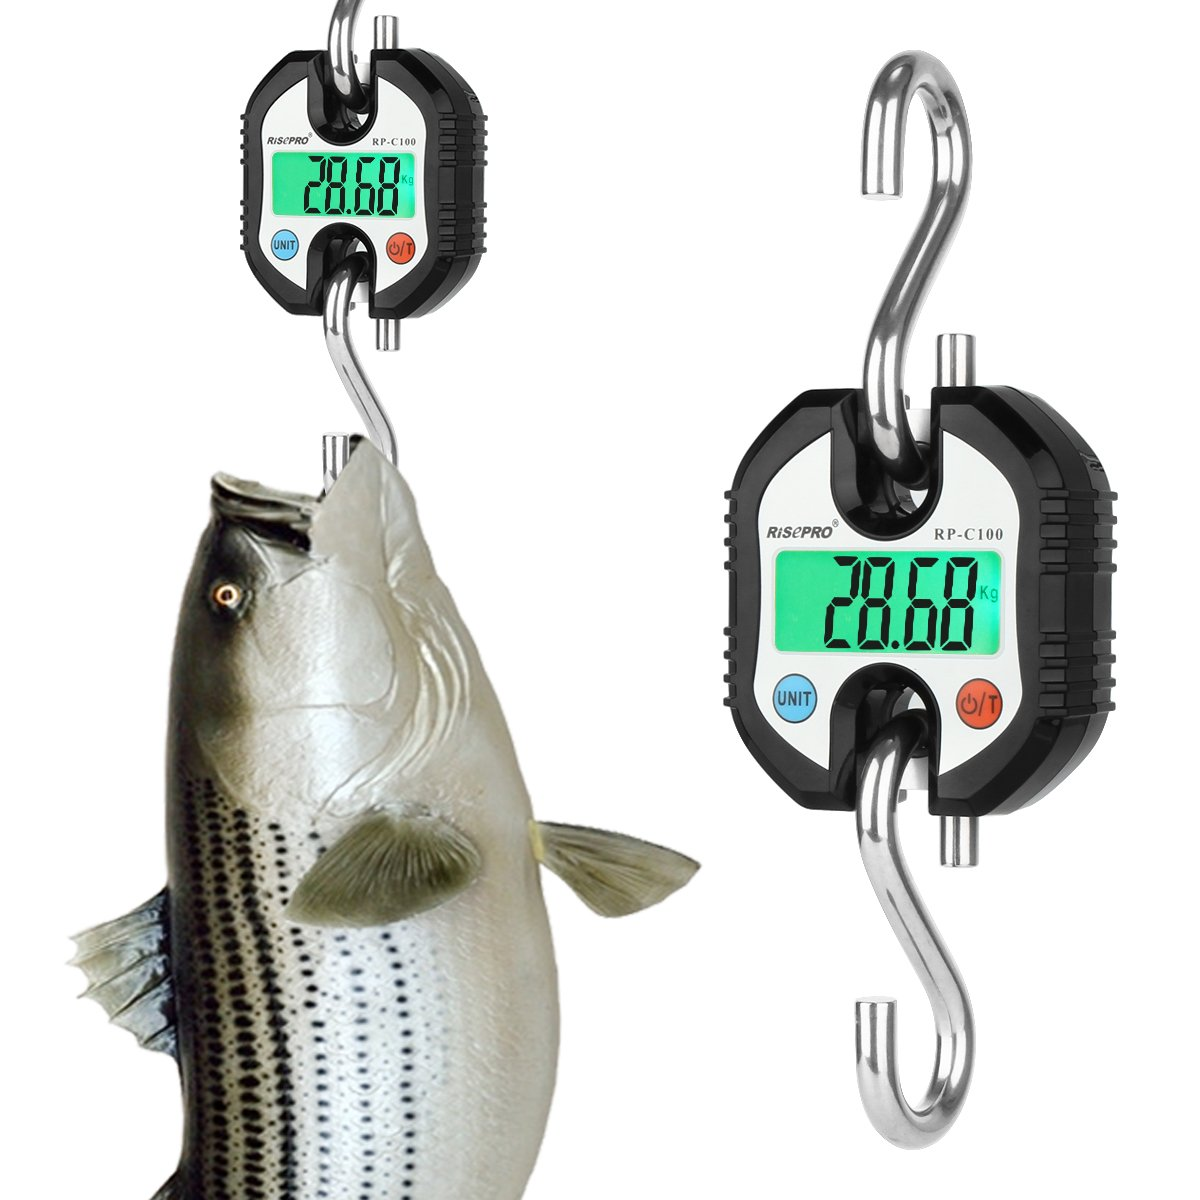 Hanging Scale, RISEPRO Digital Professional Hanging Scale W/Accurate Sensor for Luggage Fishing Construction Hunting Balance Pocket Crane 150kg W/Backlight RP-C100